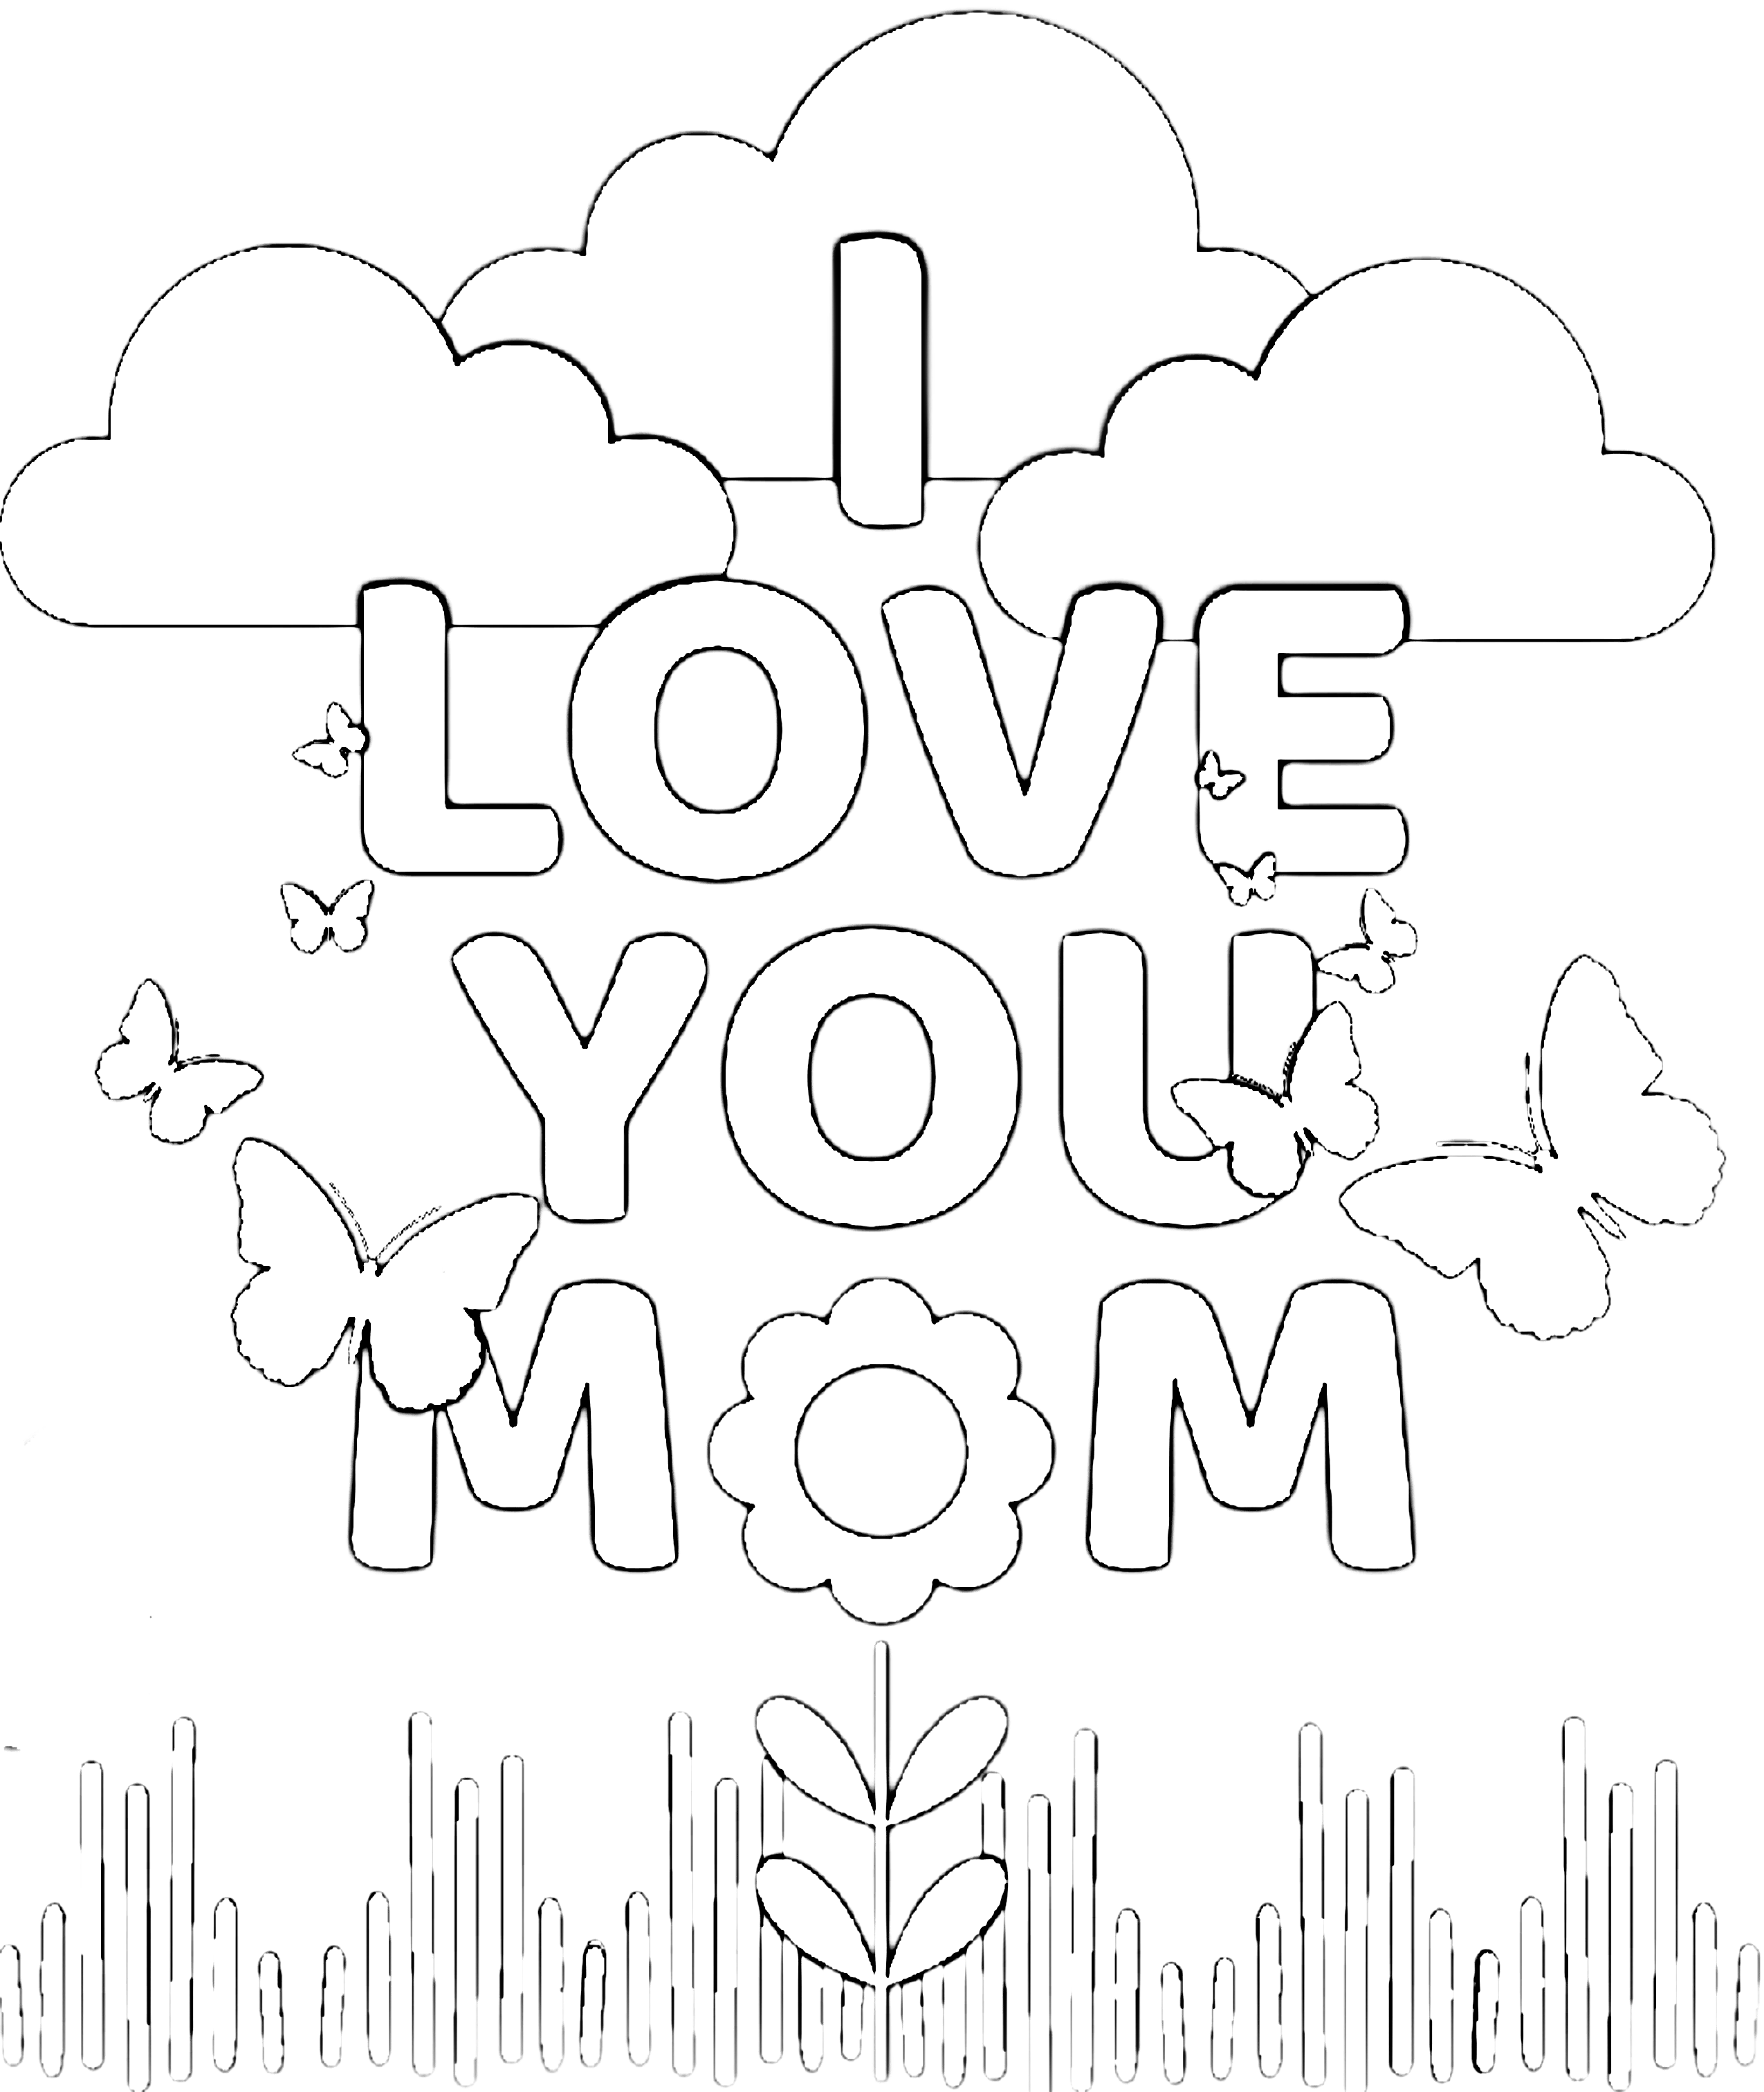 I love you Mom Coloring Page - Free Printable